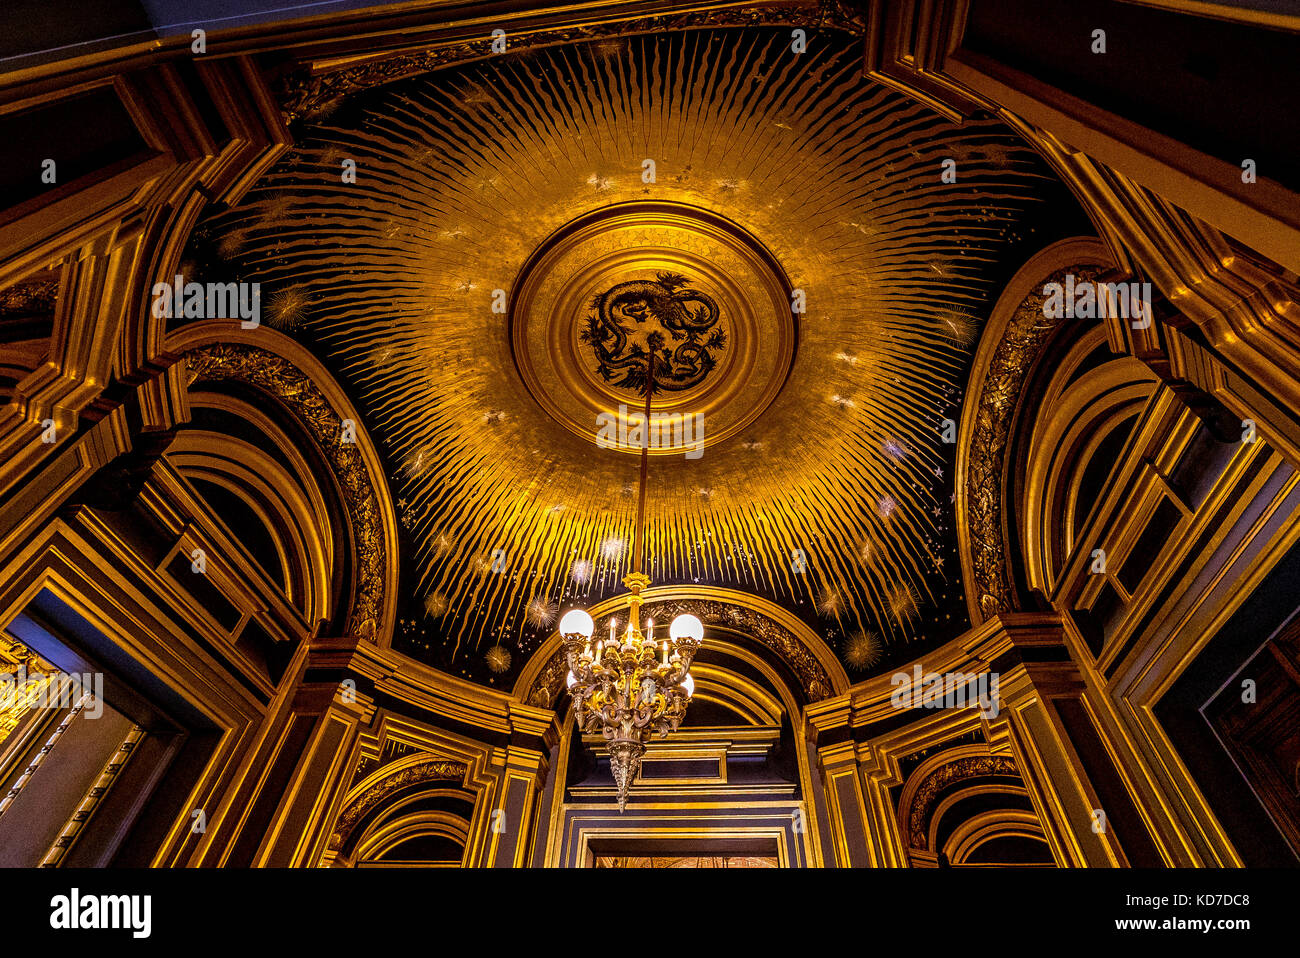 One of the many beautiful ceilings in the Palais Garnier, or Paris Opera - Stock Image